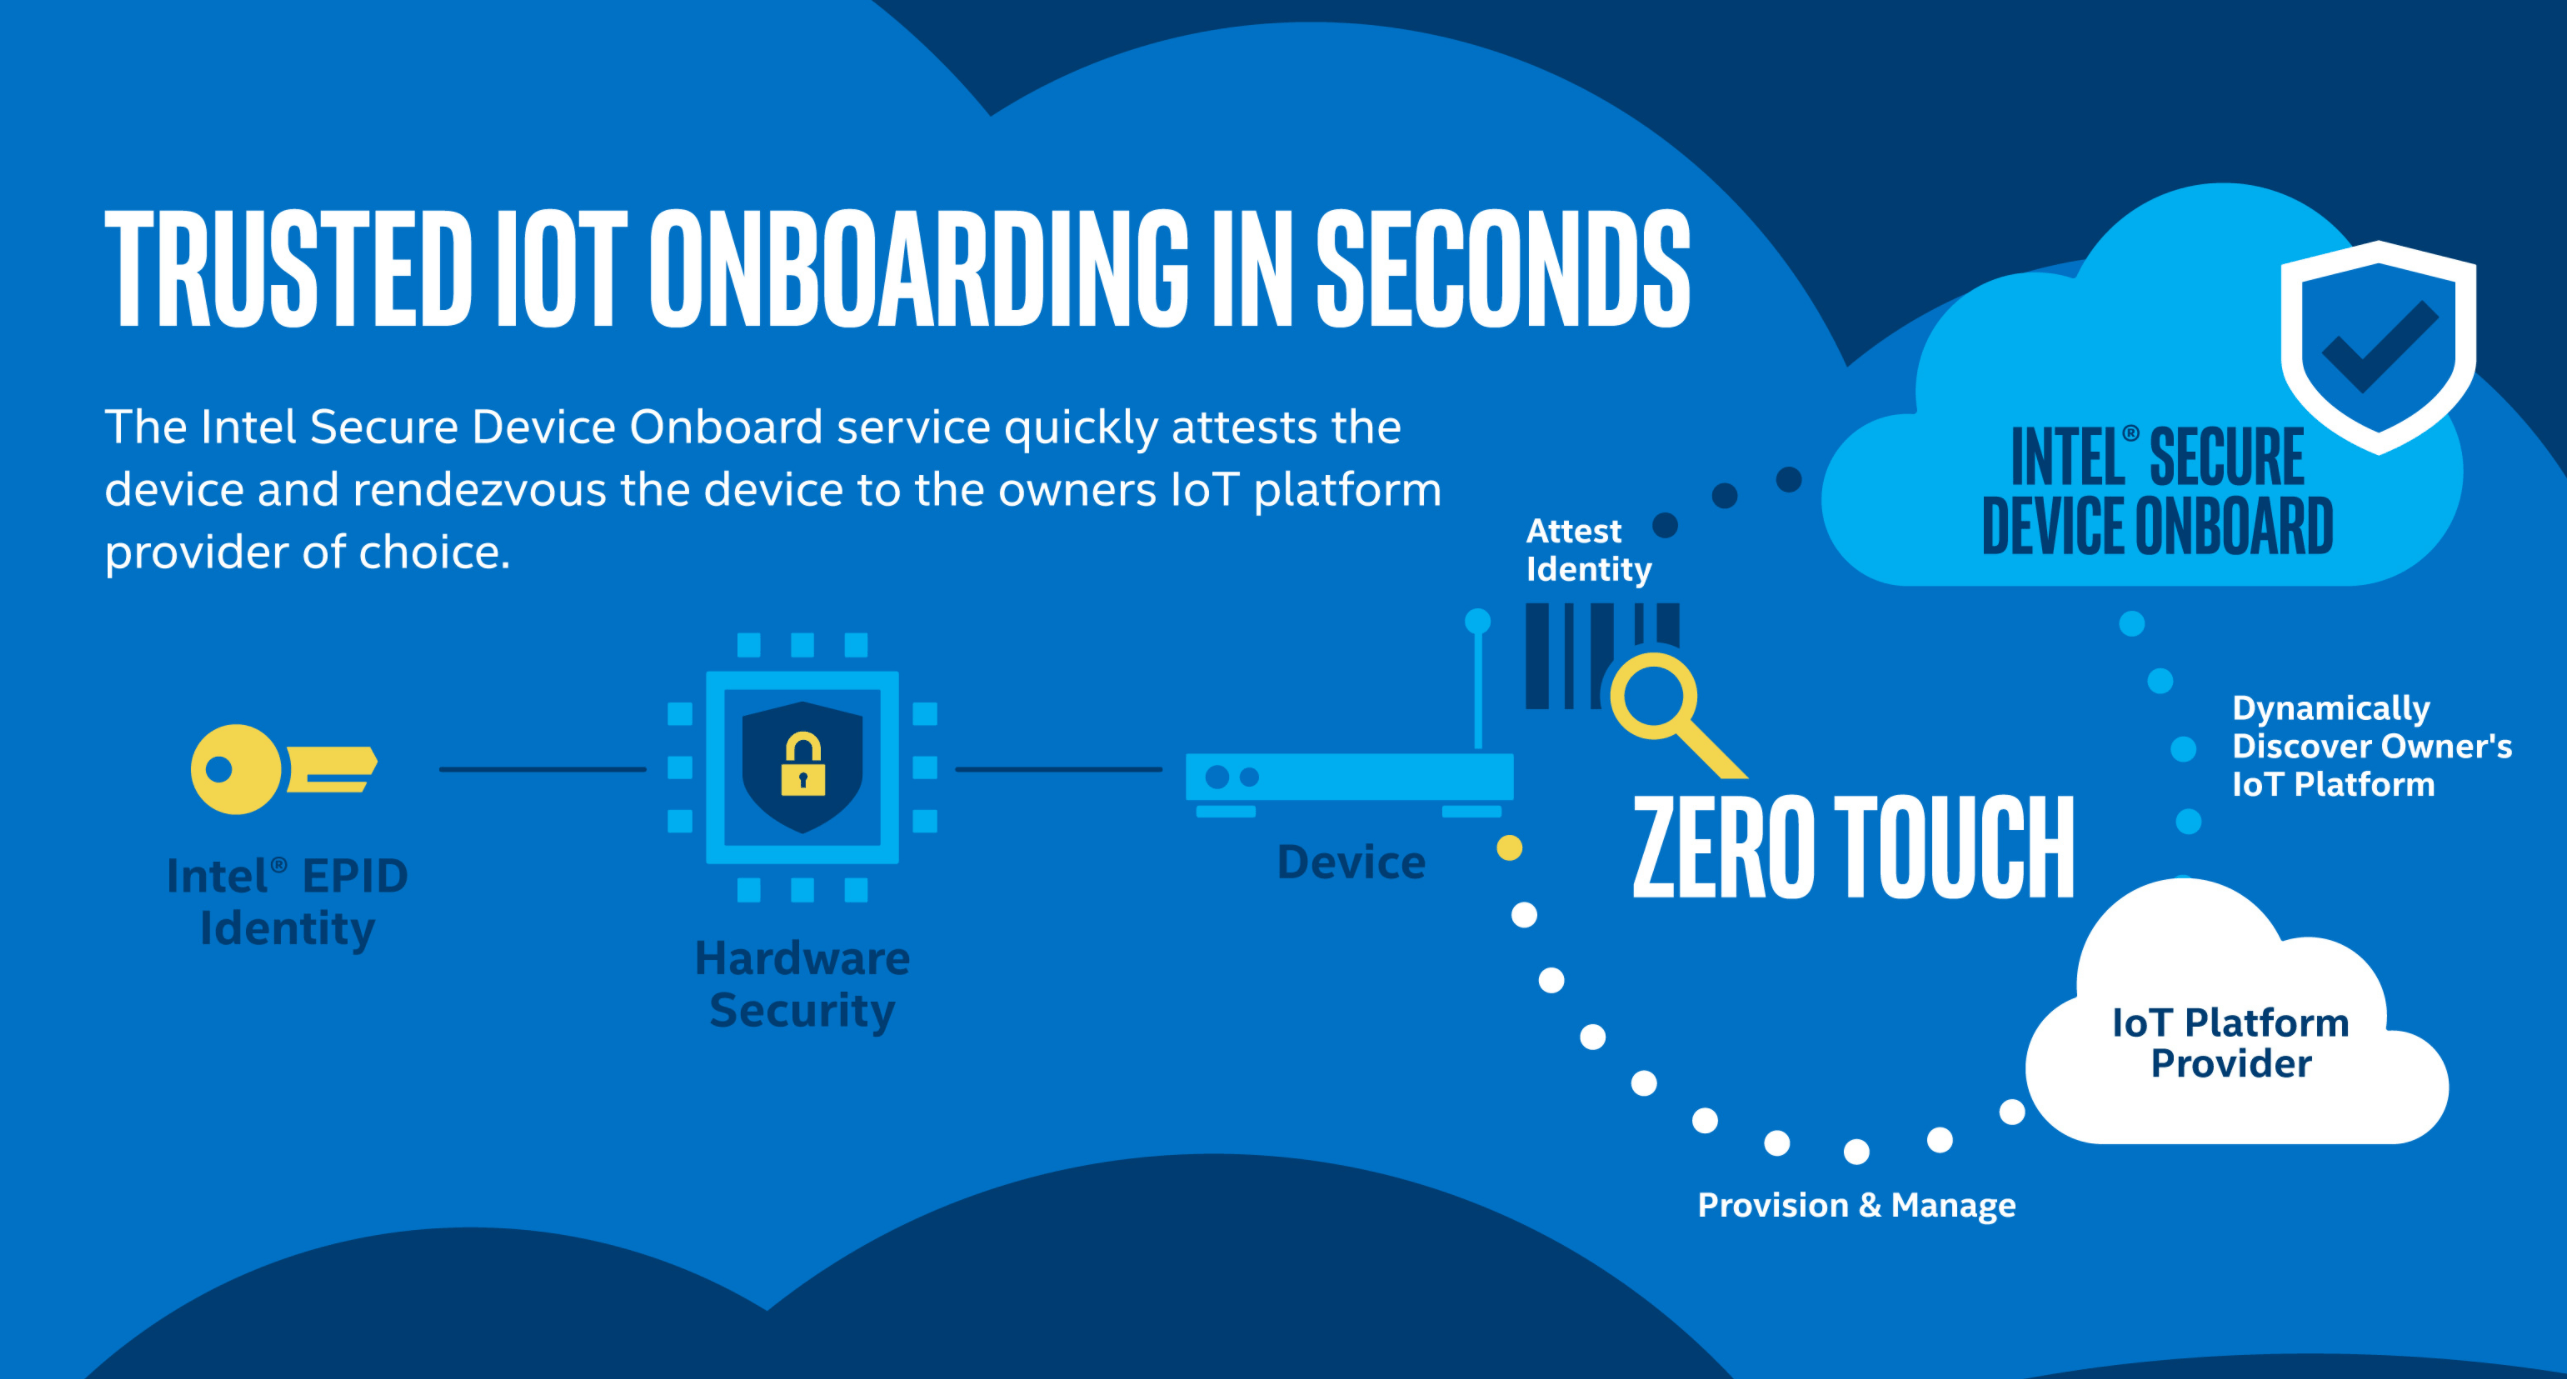 intel announces new iot onboarding service internet of business onboard intel iot onboarding service 5 things - Onboarding Specialist